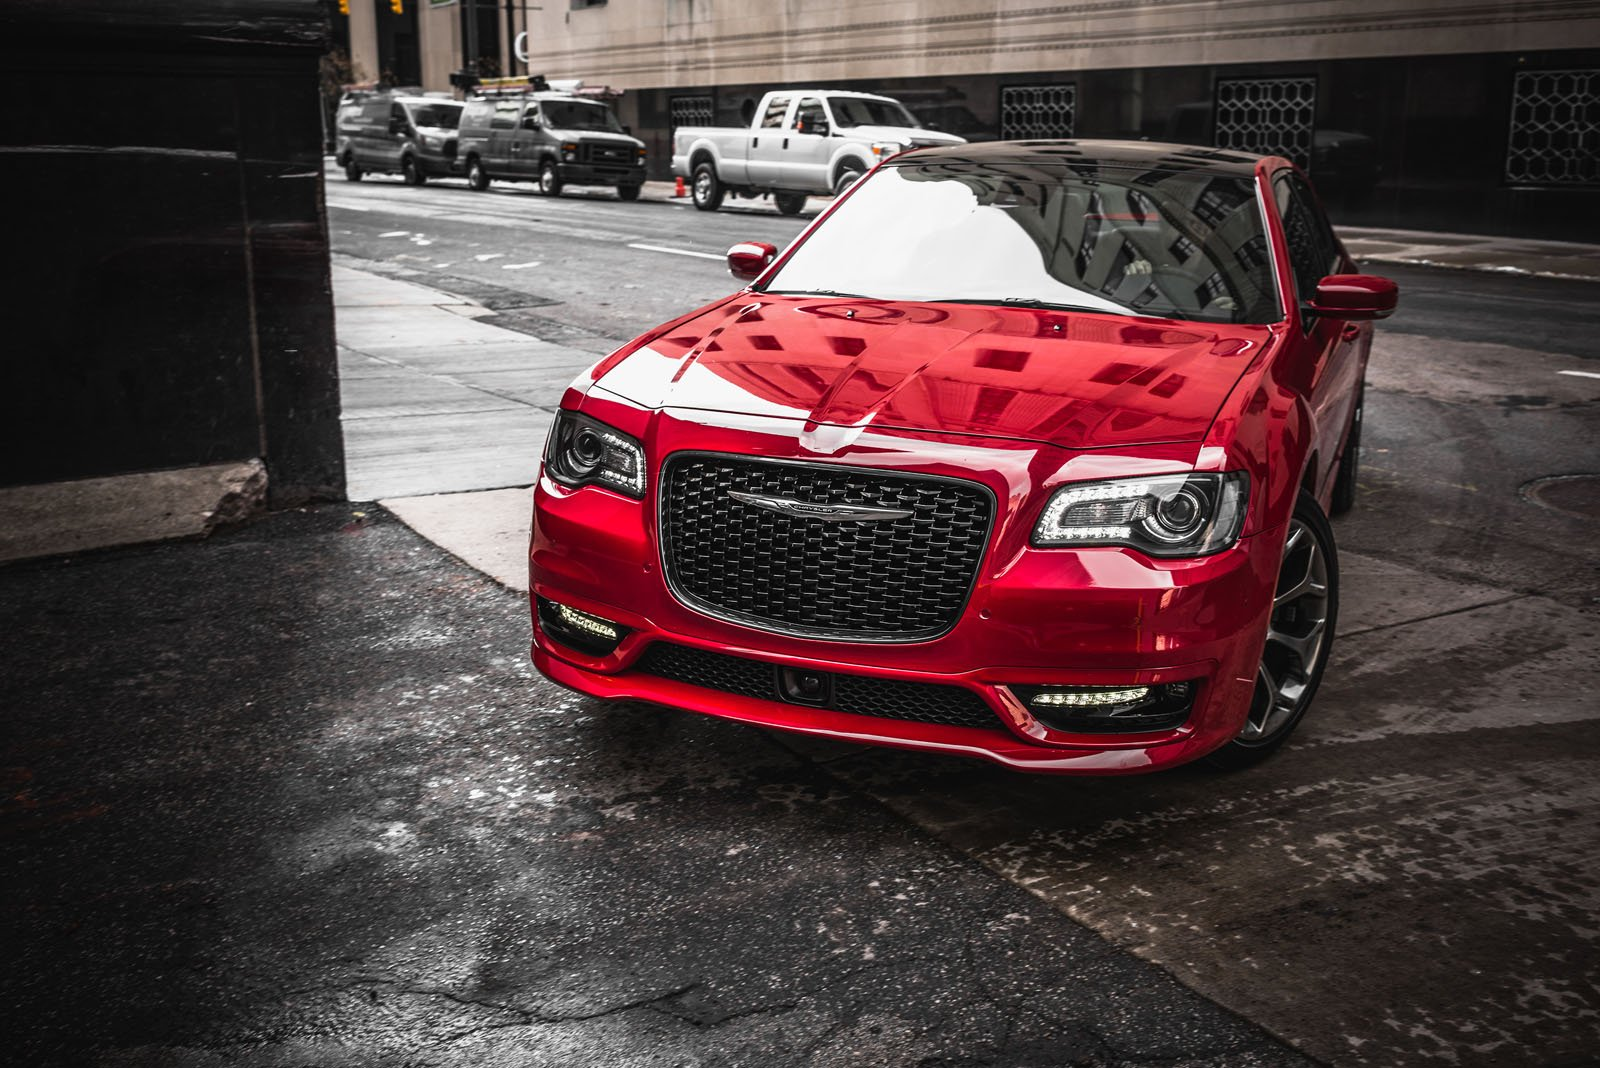 Facts About Cars >> 2018 Chrysler 300 Review - AutoGuide.com